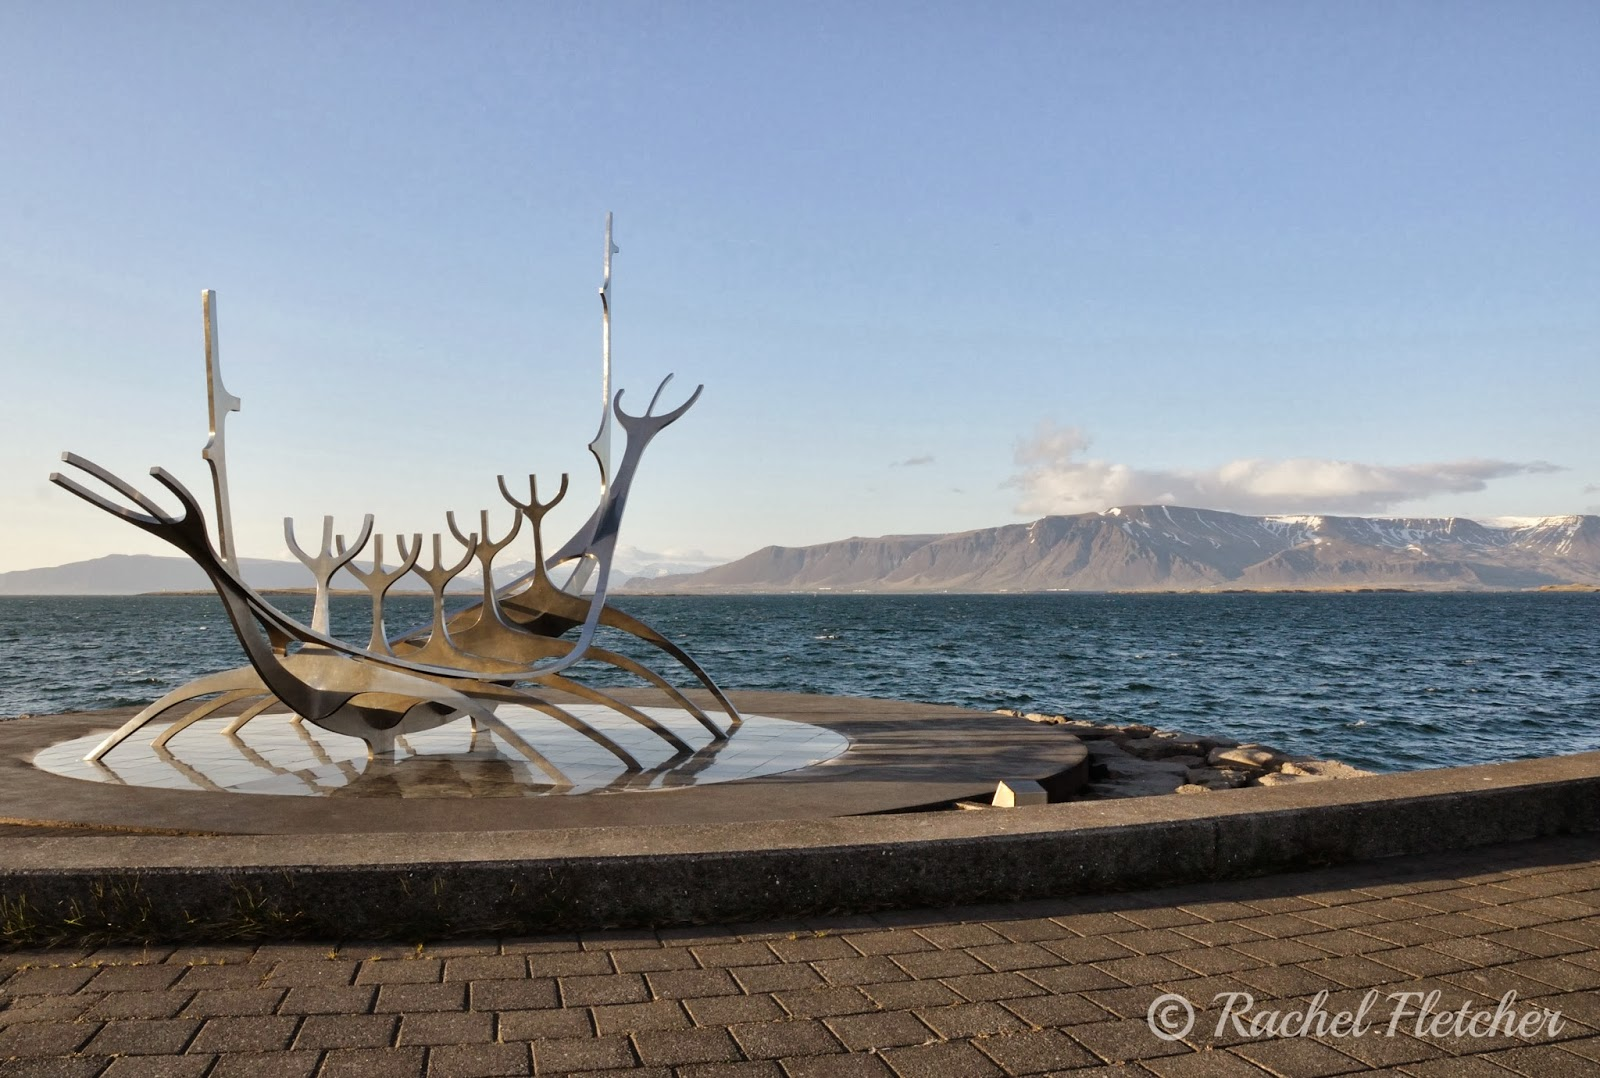 The Sun Voyager Sculpture in Reykjavik